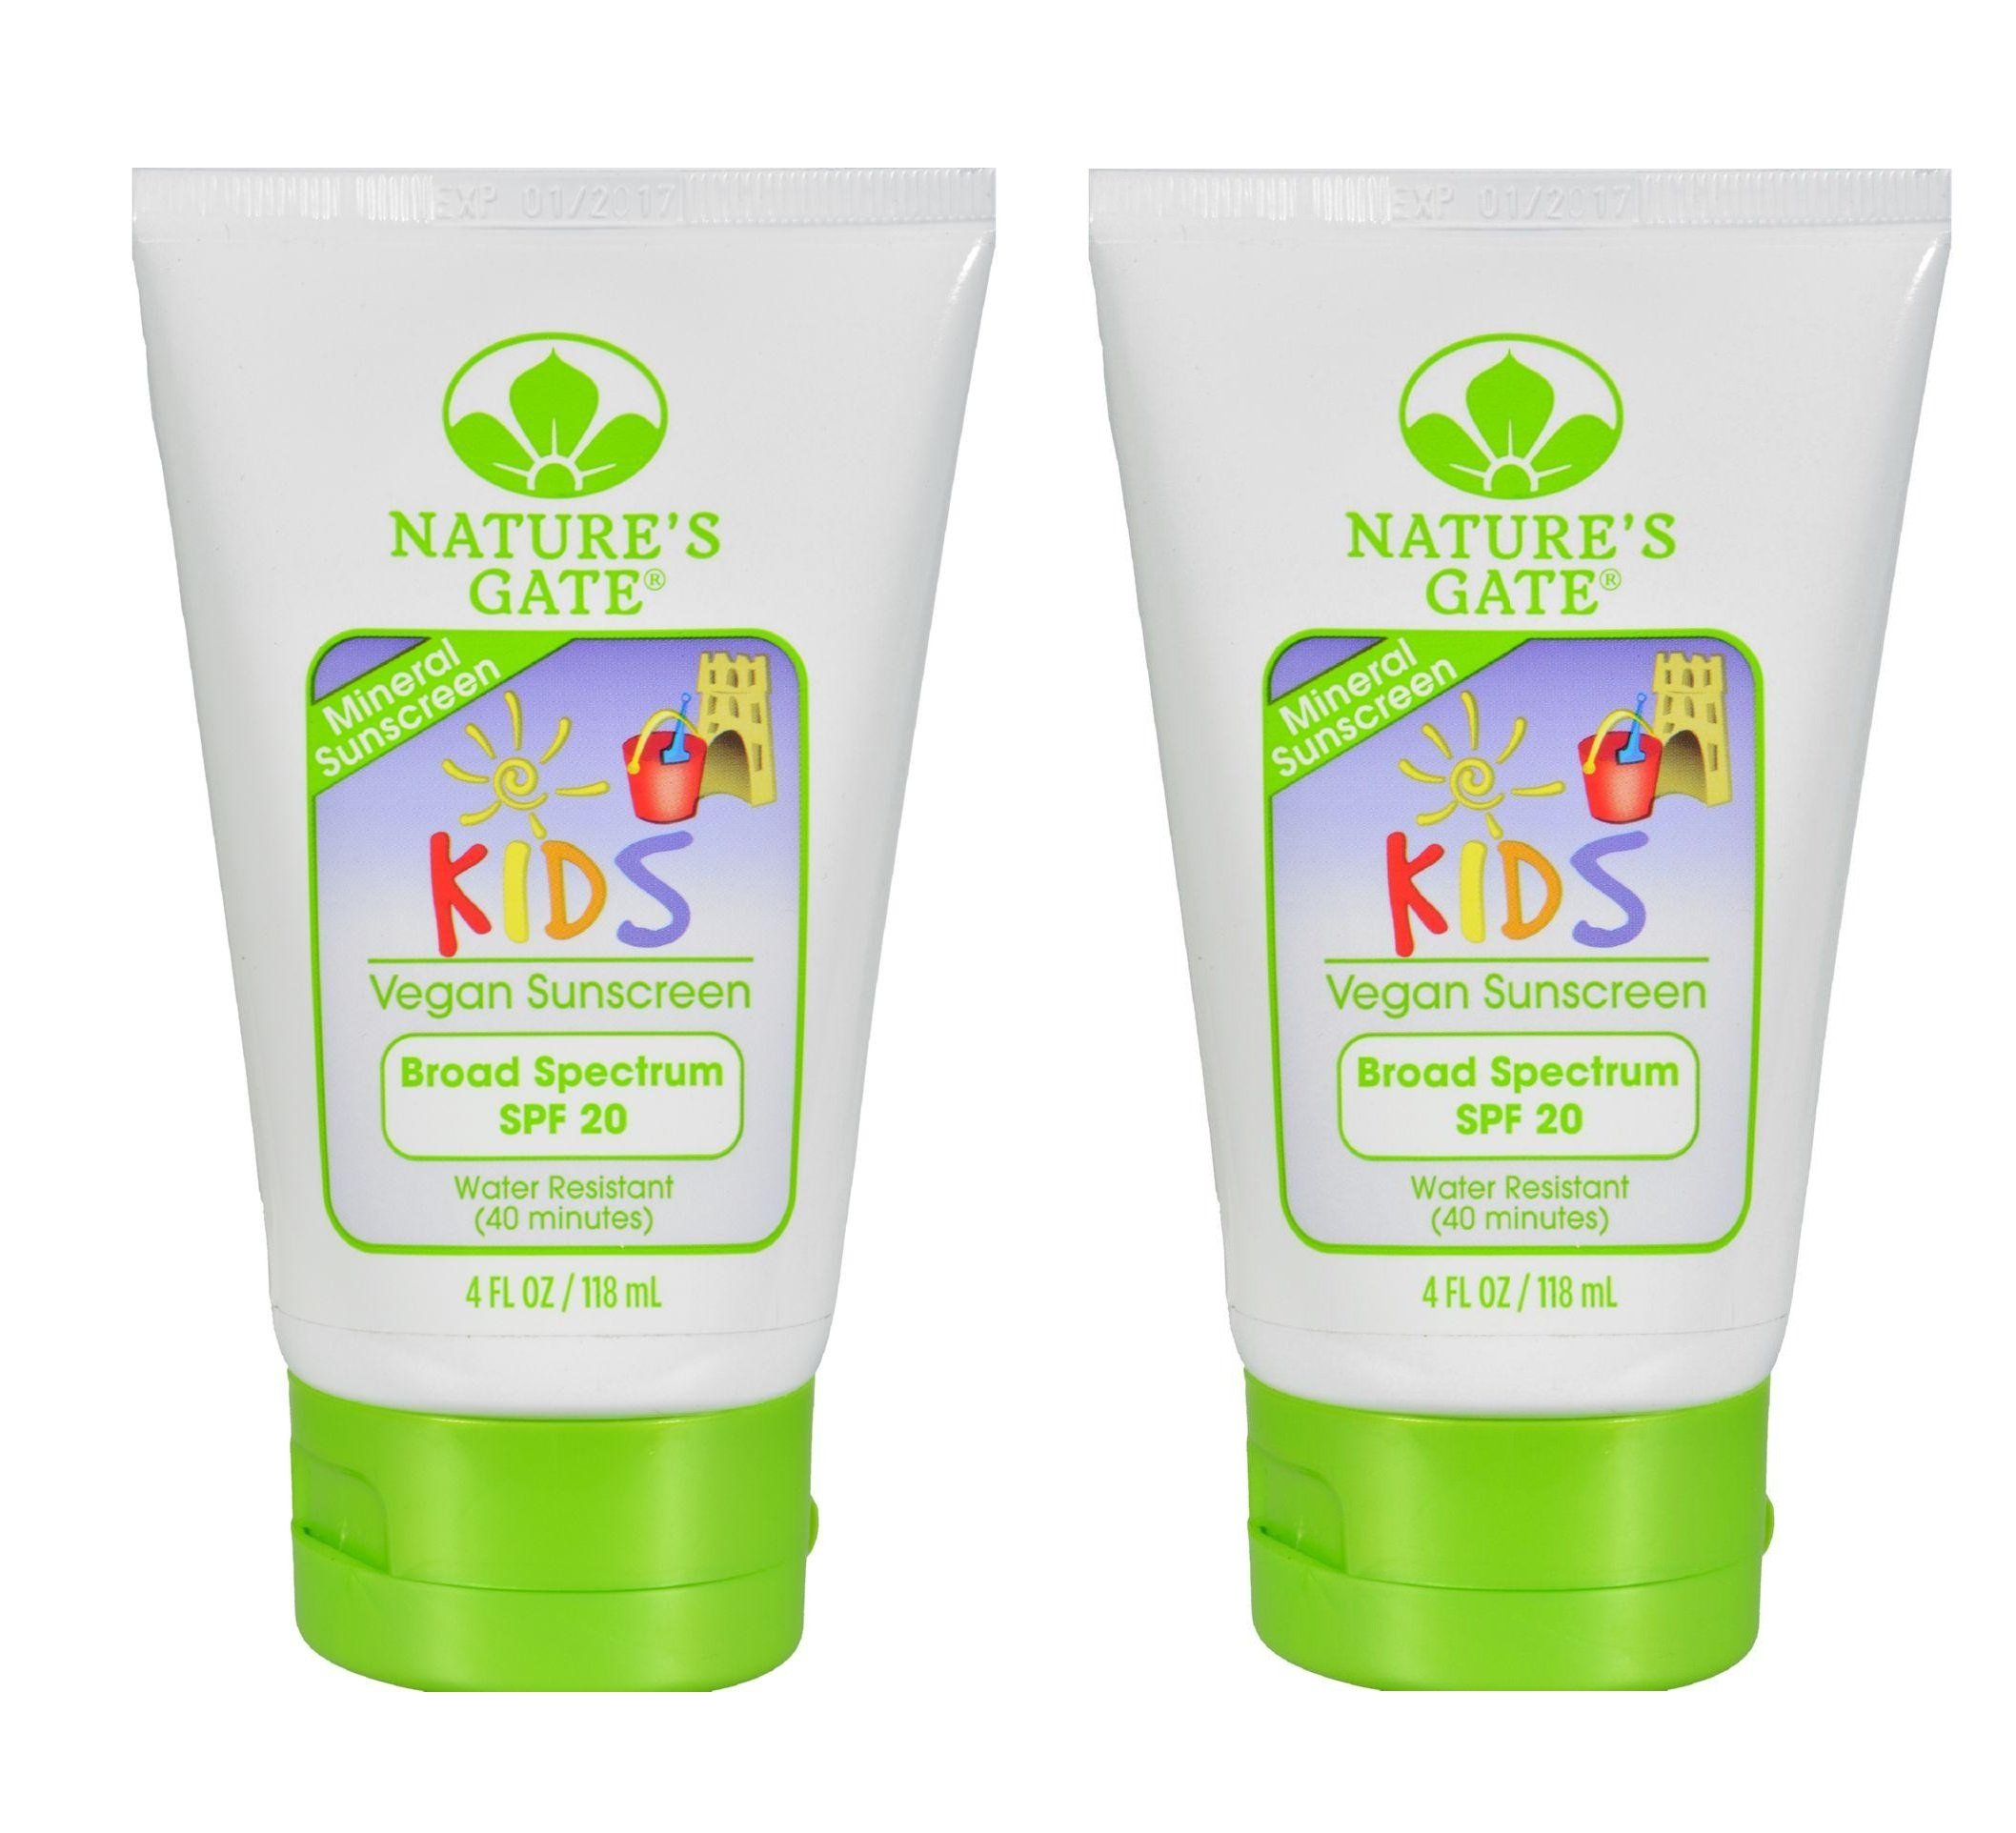 Nature's Gate Mineral Kids Broad Spectrum SPF 20 Sunscreen (Pack of 2) With Safflower Seed Oil, Shea Butter and Apricot Kernal Oil, 4 fl. oz. Each